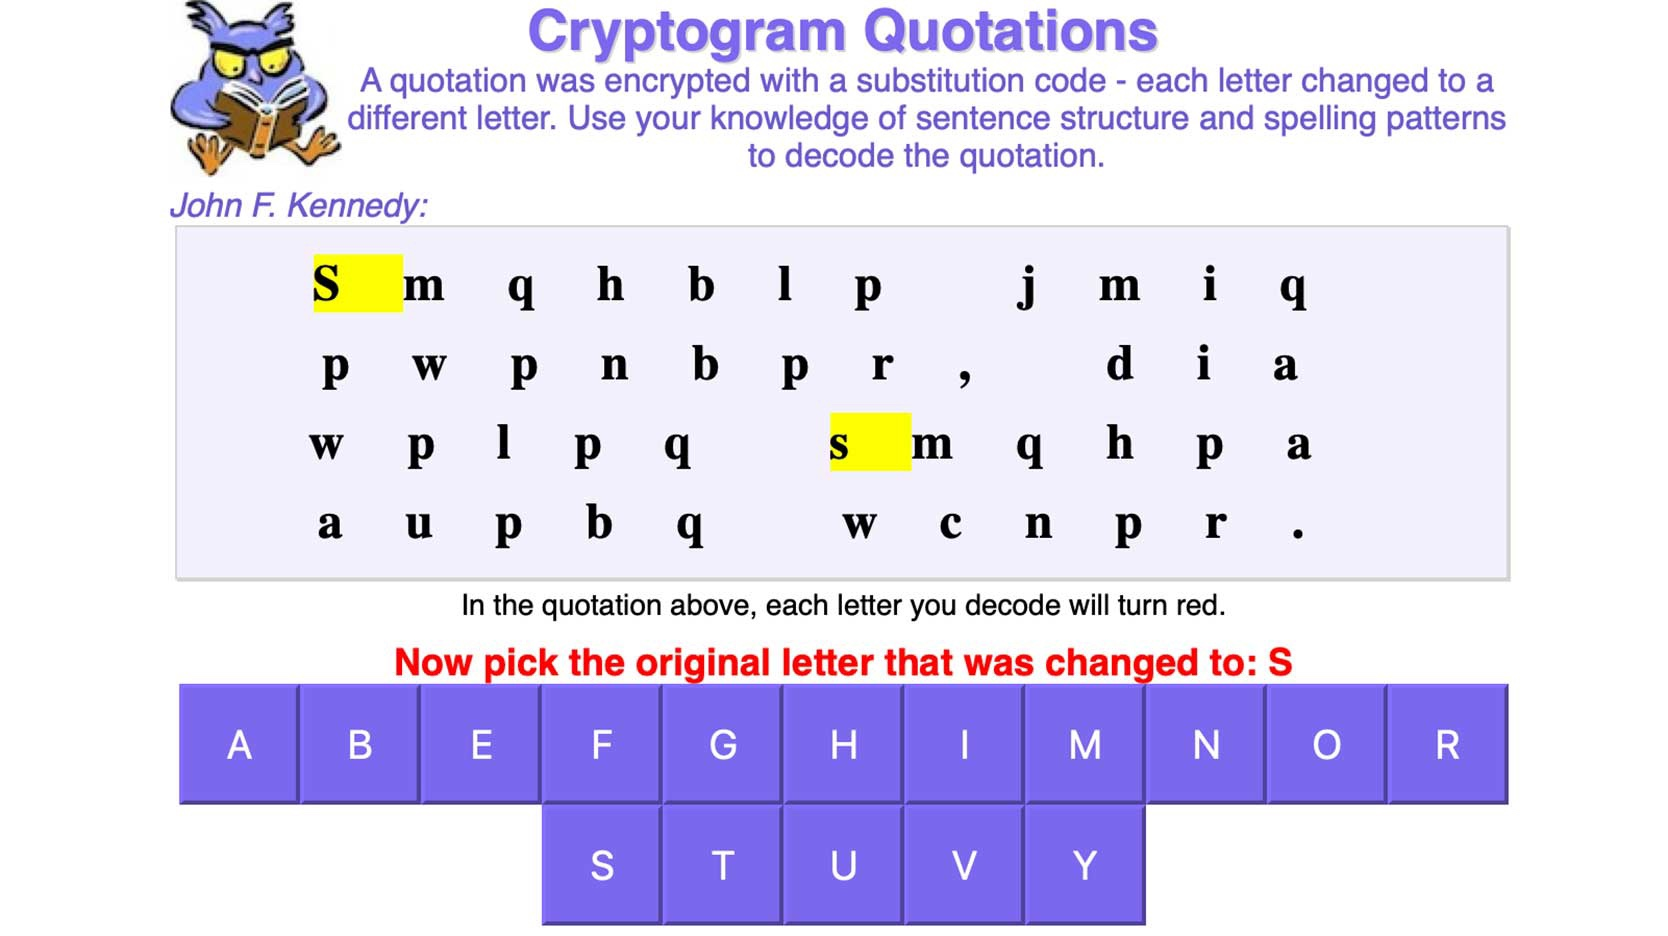 cryptogram quotations online word game